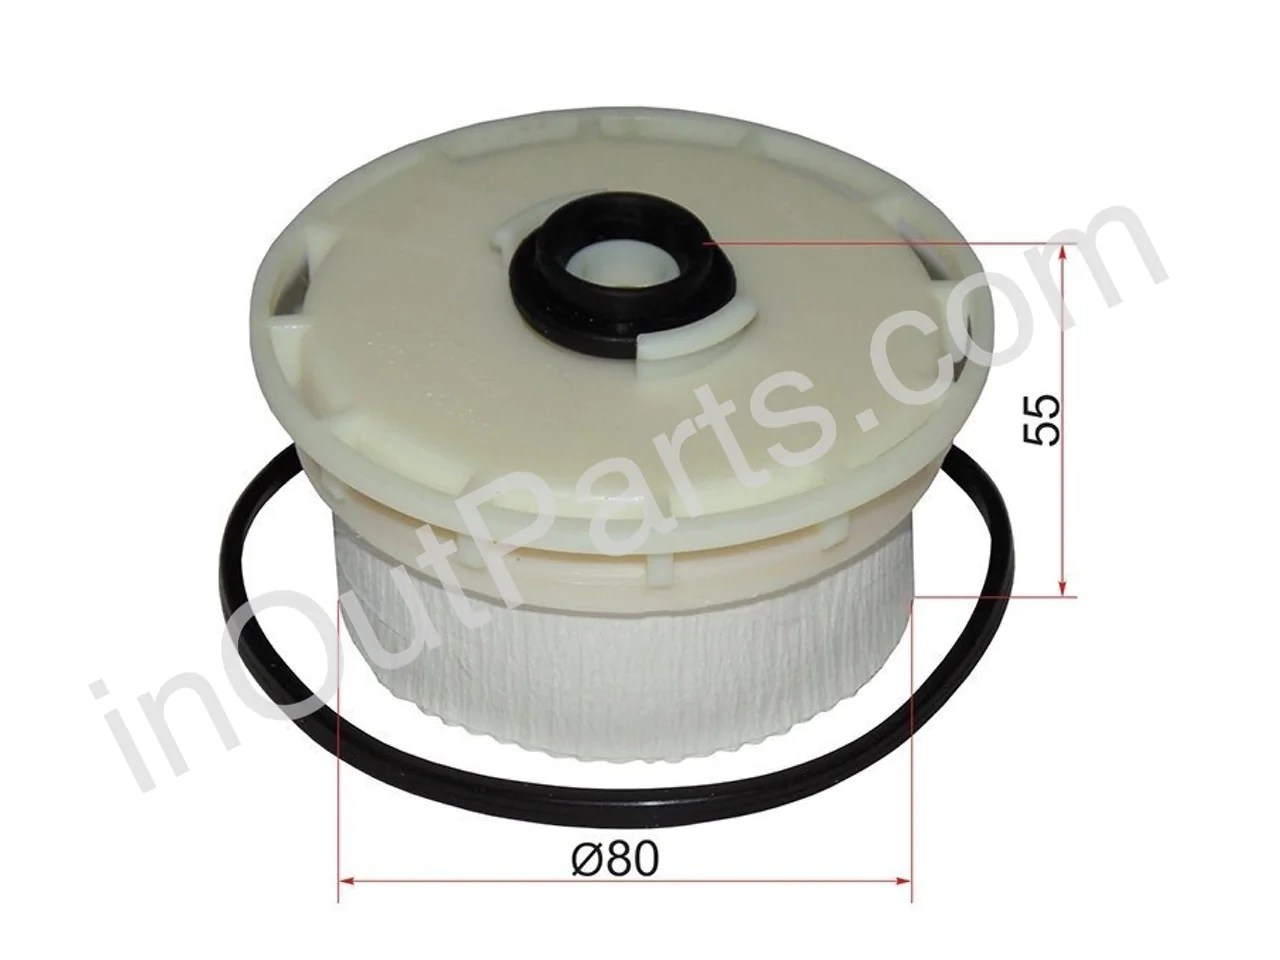 fuel filter diesel fits toyota land cruiser 200 2007 2008 2009 2010 2011 2012 2013 2014 2015 2016 [ 1280 x 960 Pixel ]